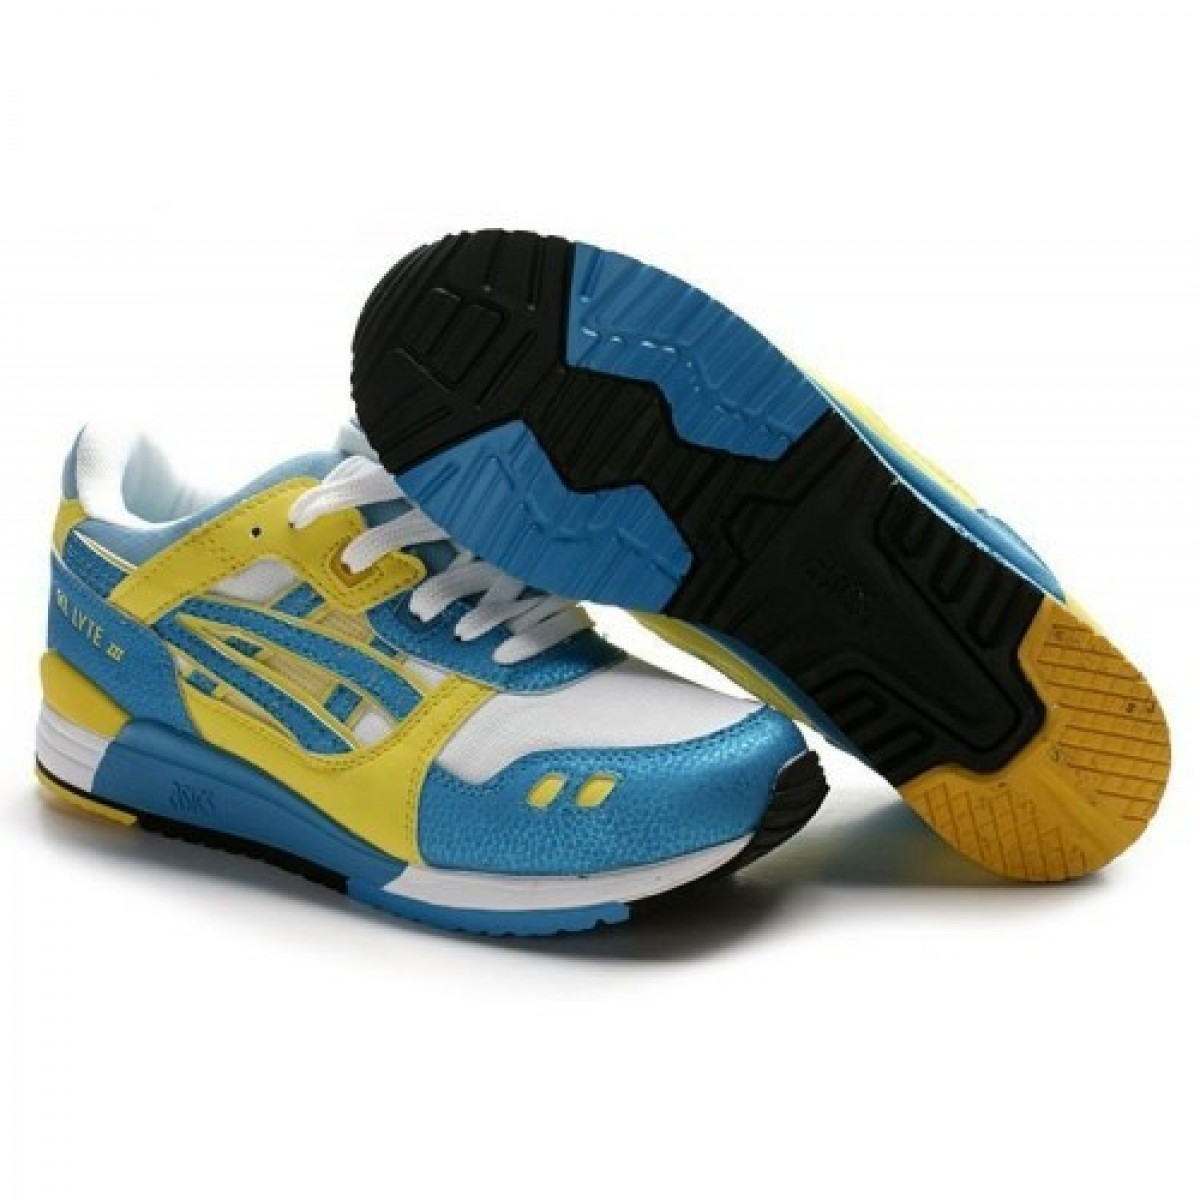 asics chaussures soldes